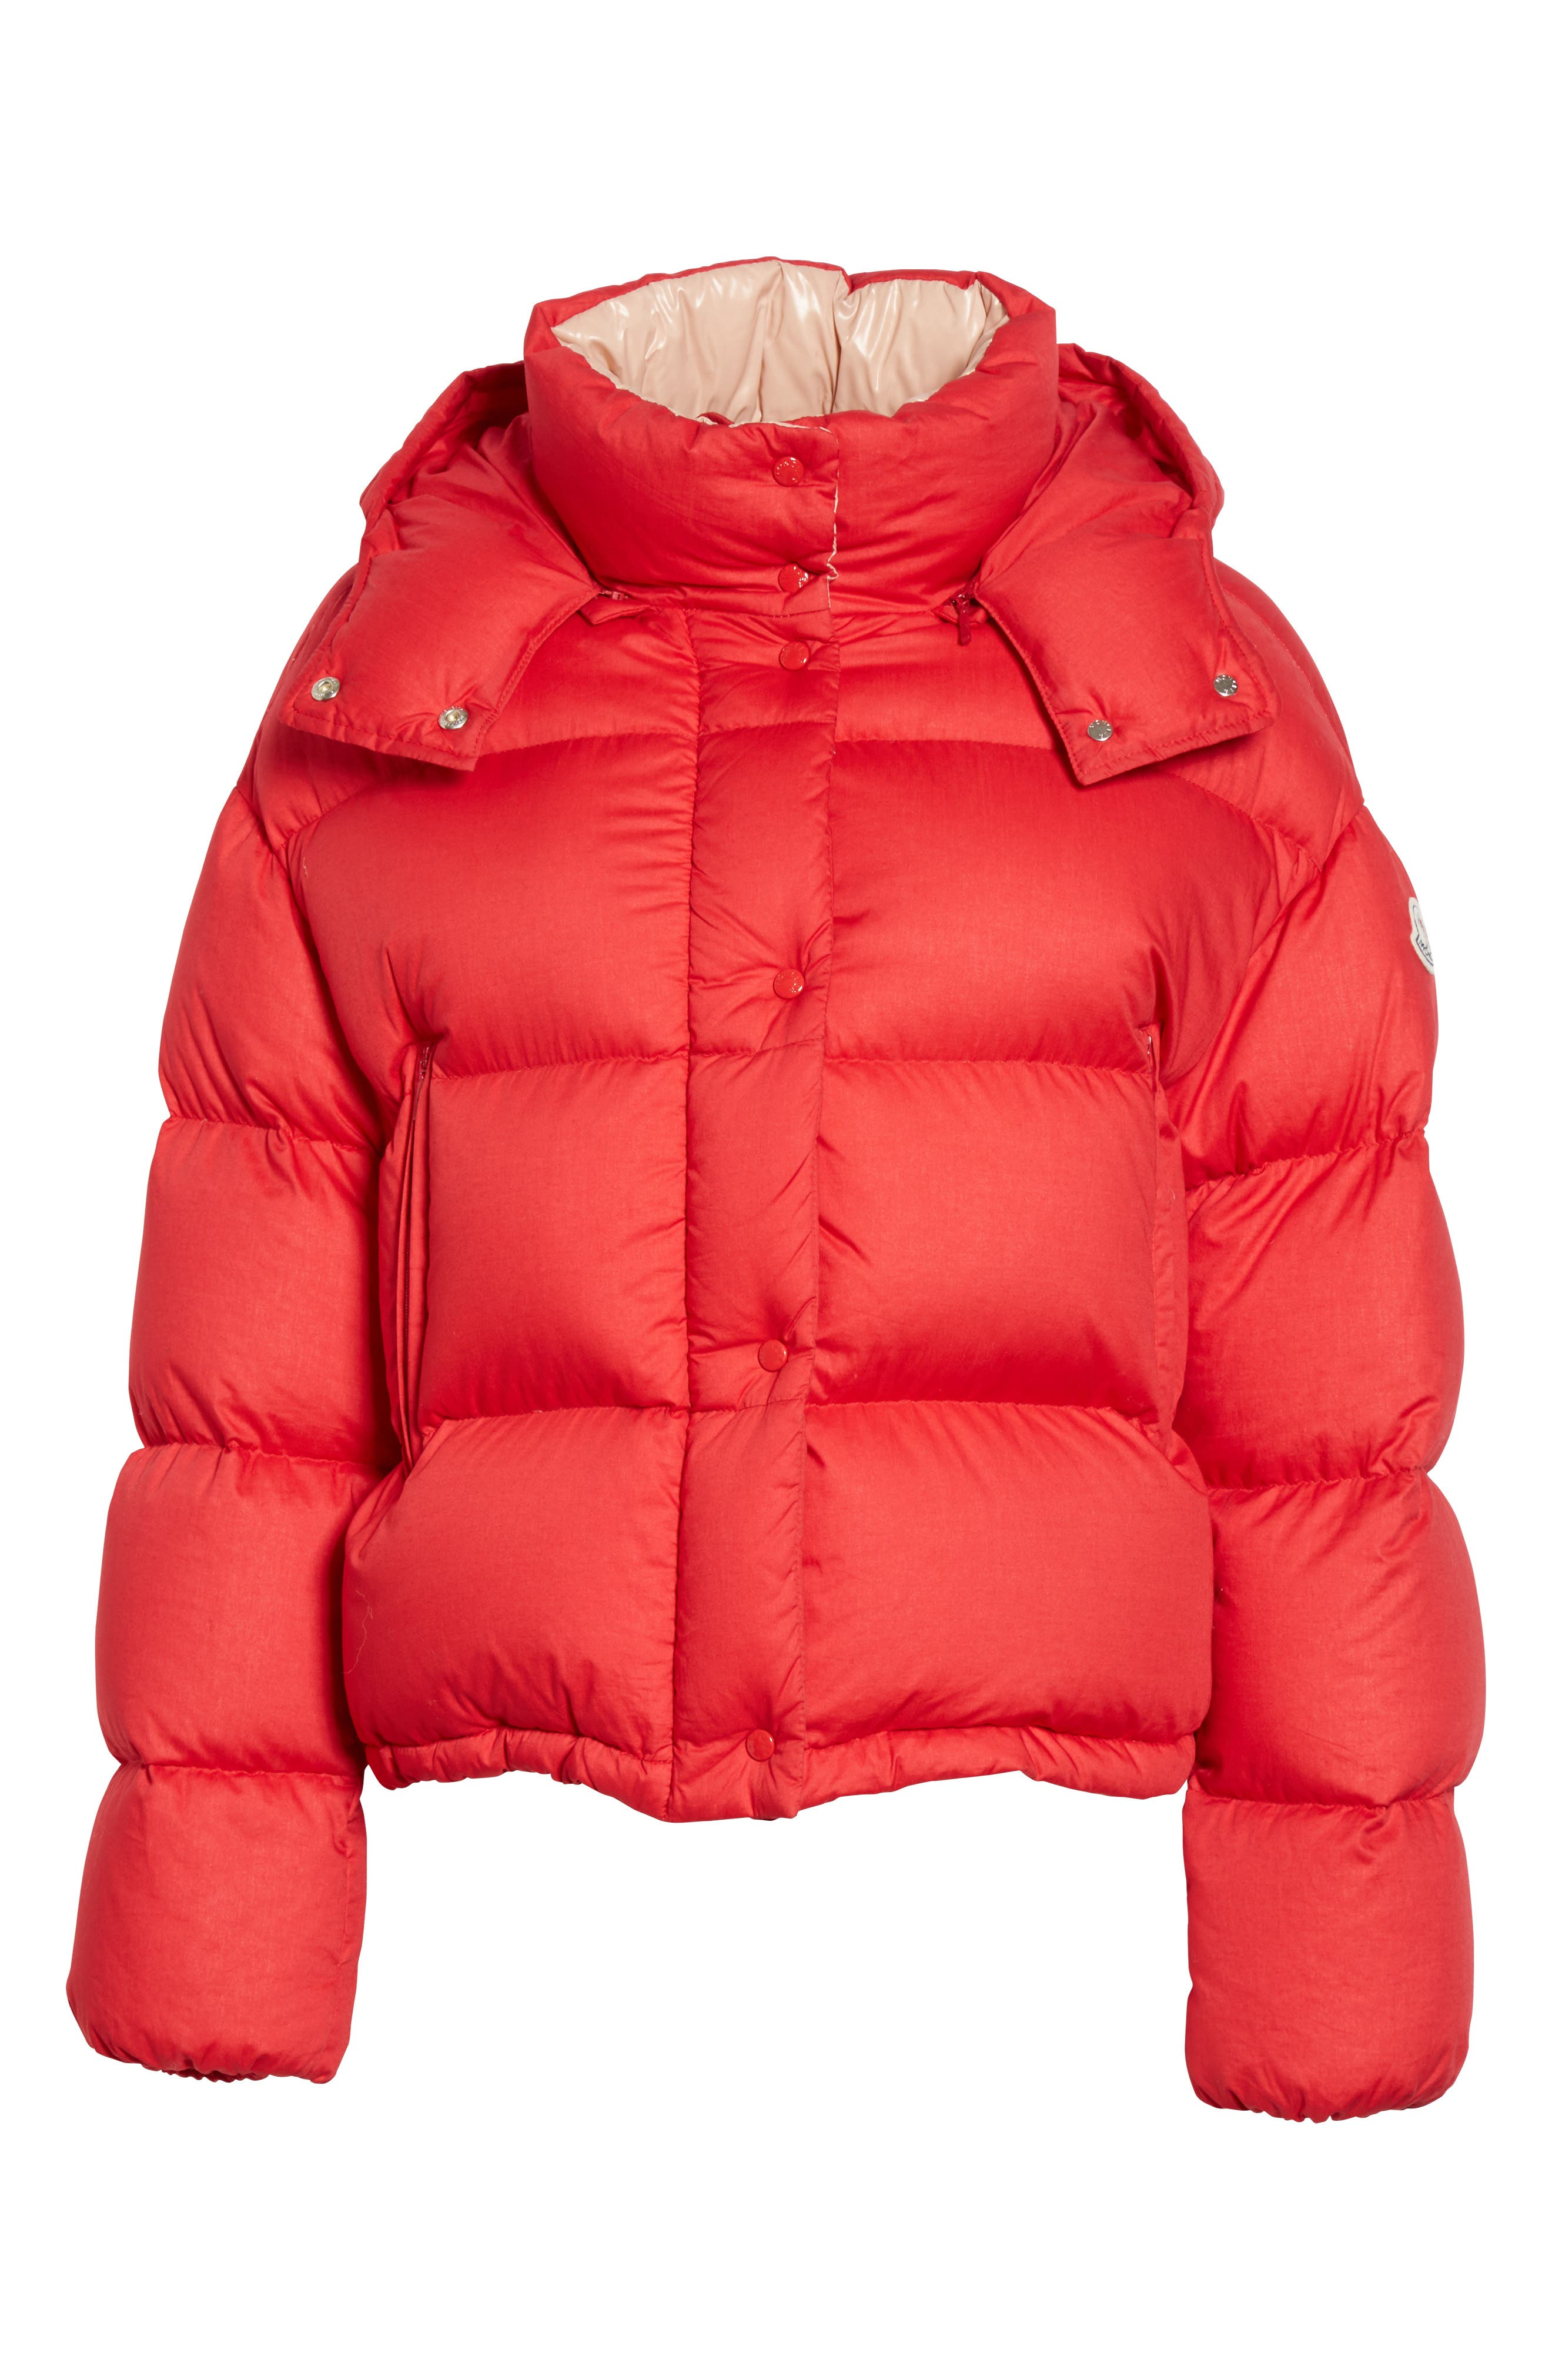 Paeonia Quilted Puffer Jacket,                             Alternate thumbnail 6, color,                             Red